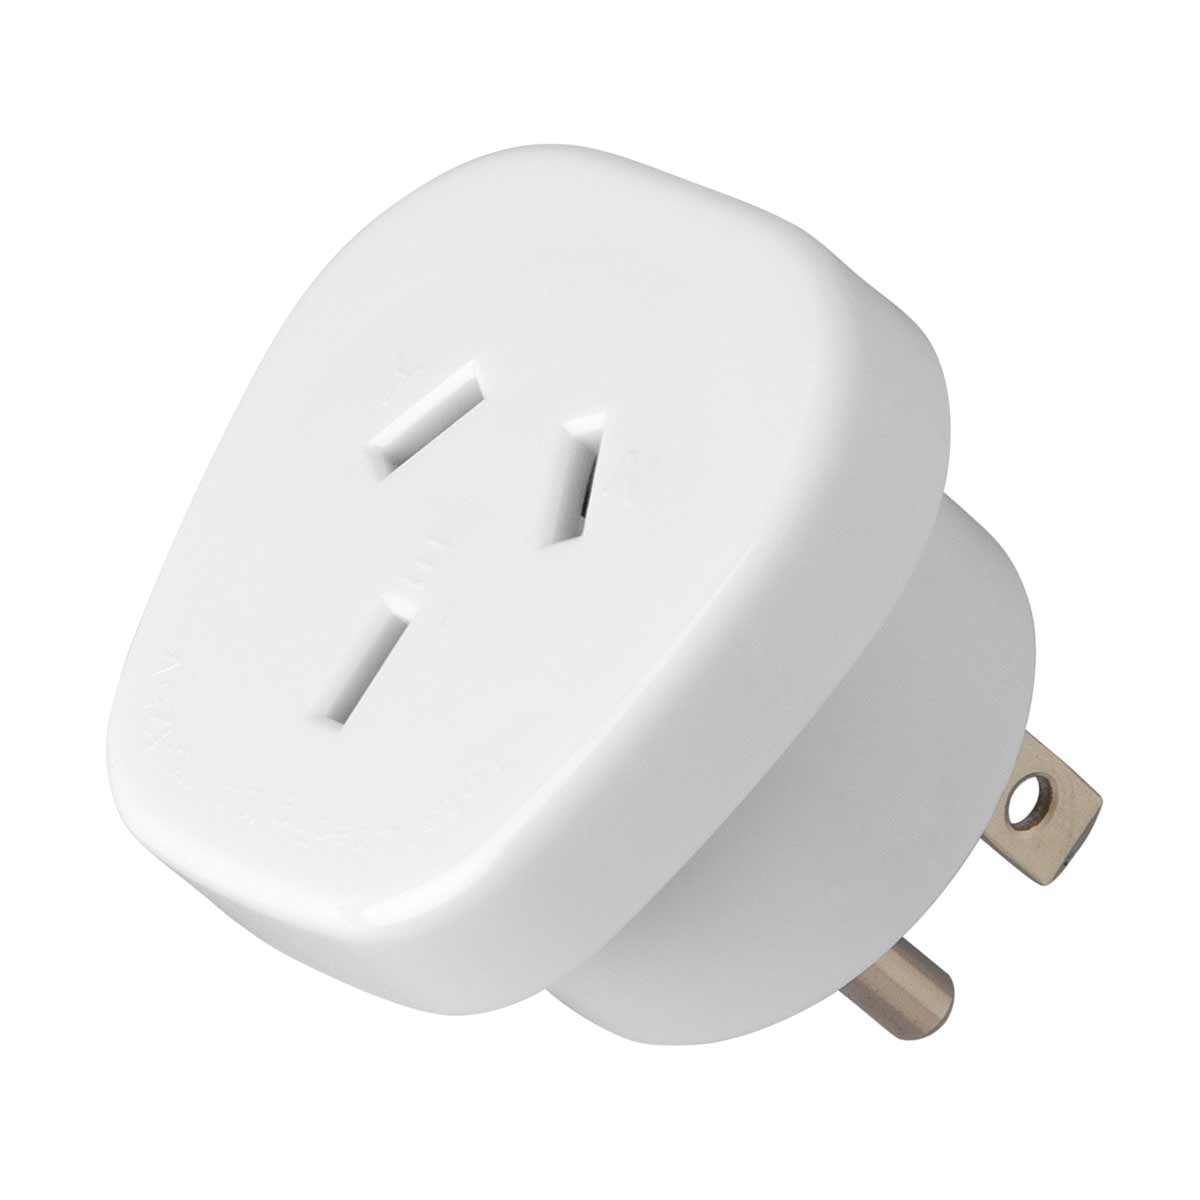 Coles Travel Adaptor Travel Plug Usa Kmart